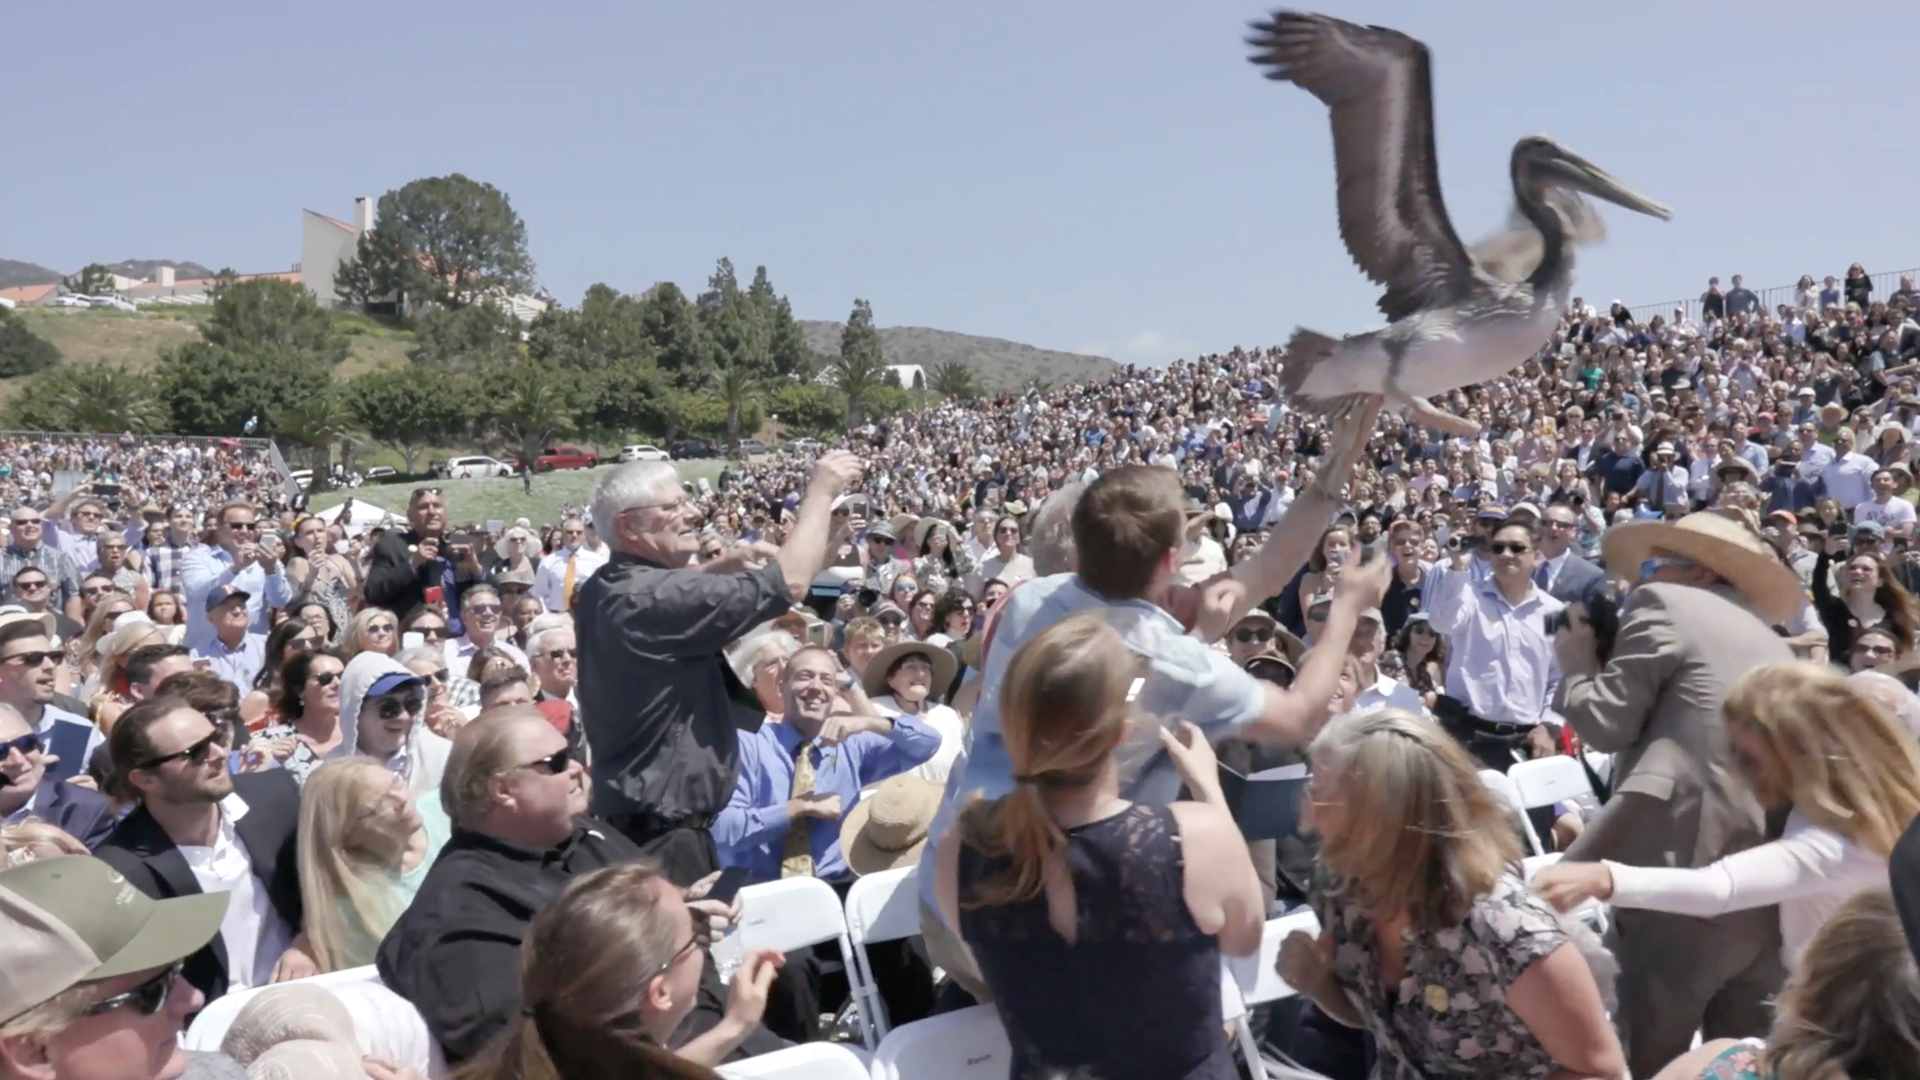 Pelicans dive-bomb California graduation in hilarious, horrifying video